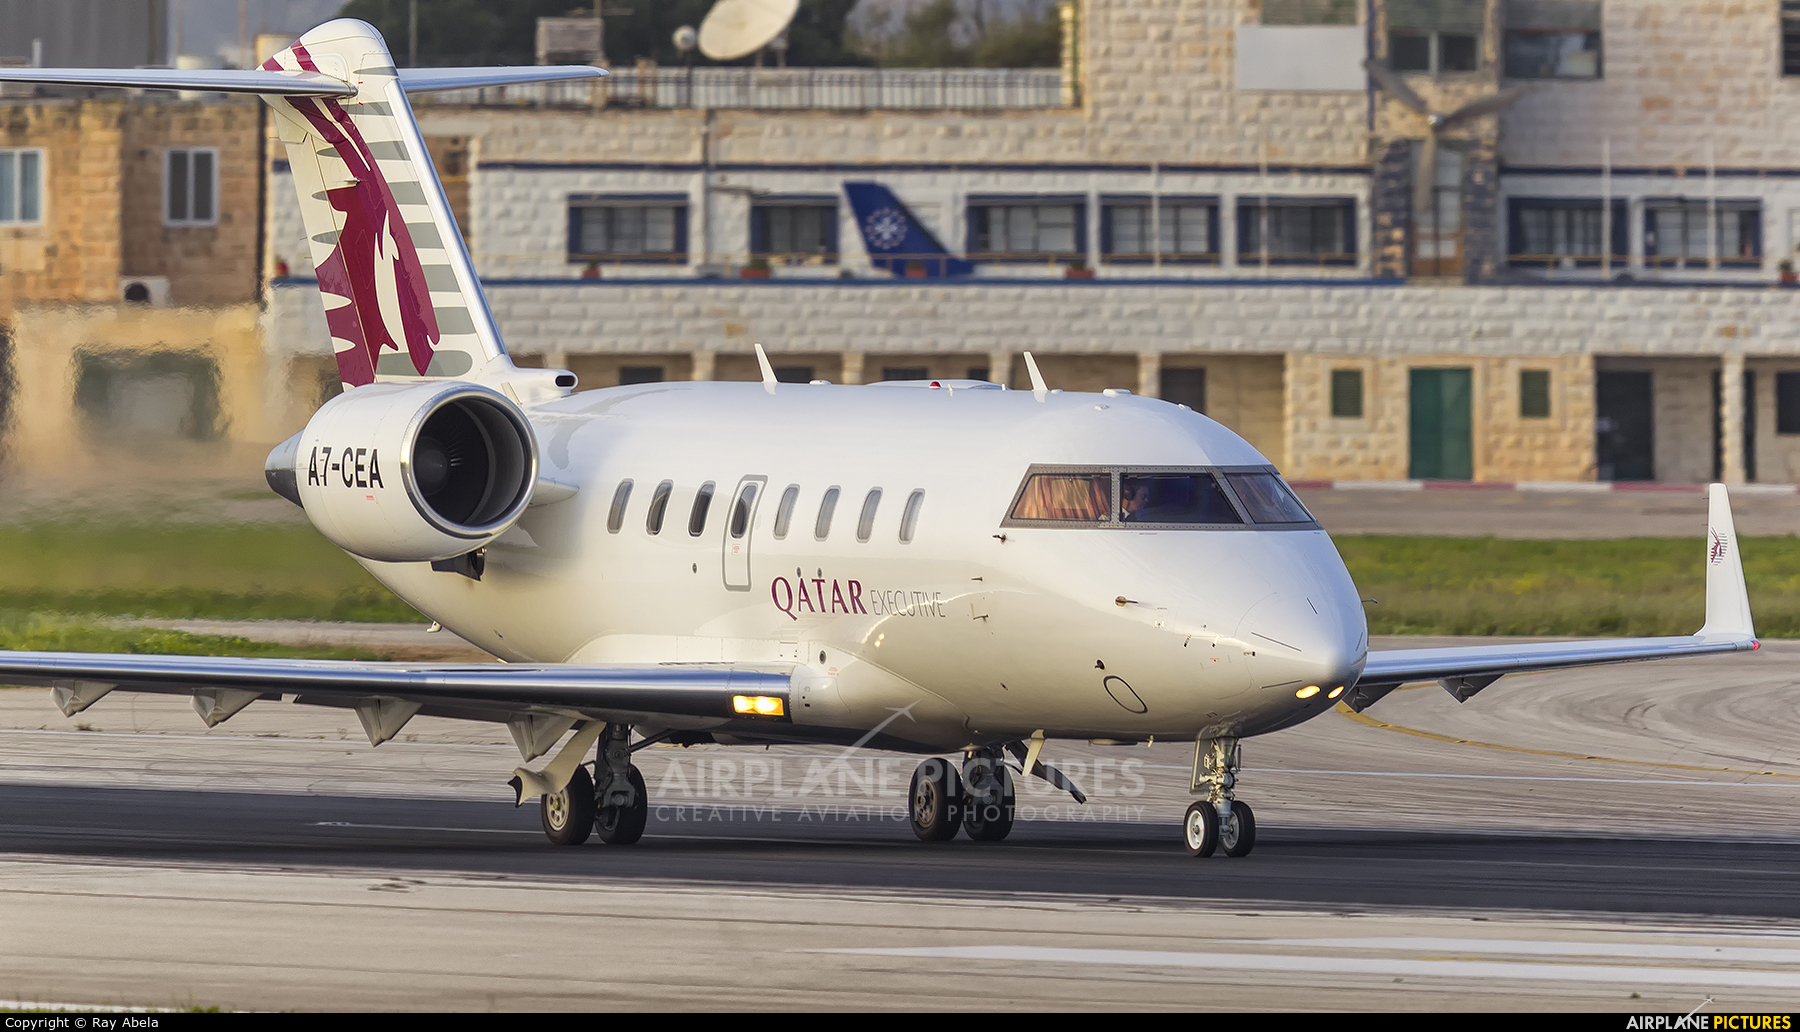 Qatar Executive A7-CEA aircraft at Malta Intl